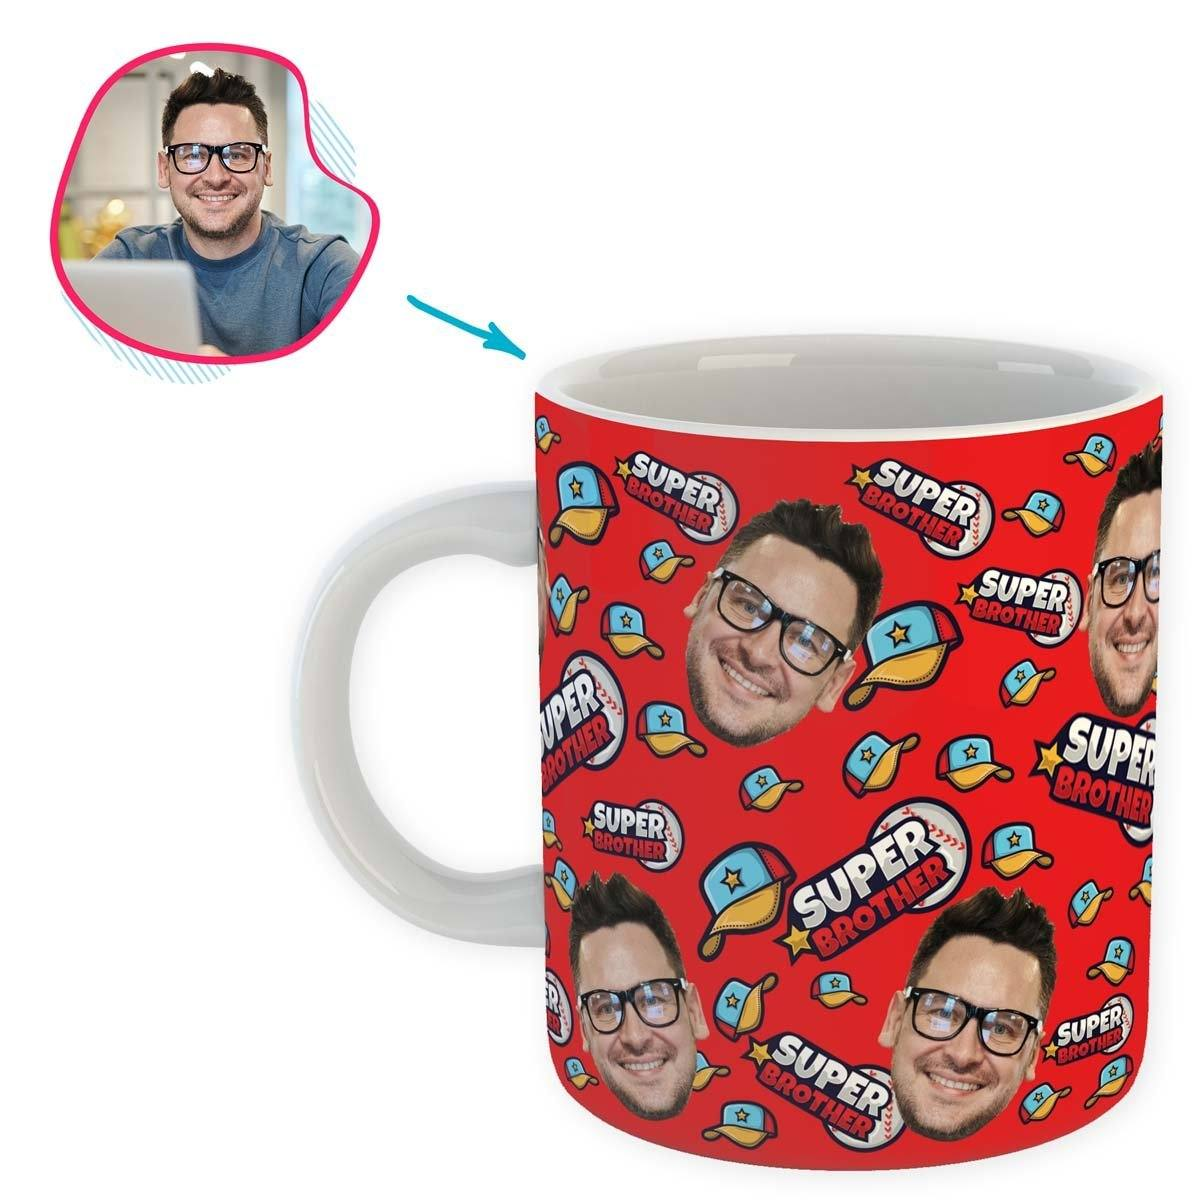 red Super Brother mug personalized with photo of face printed on it